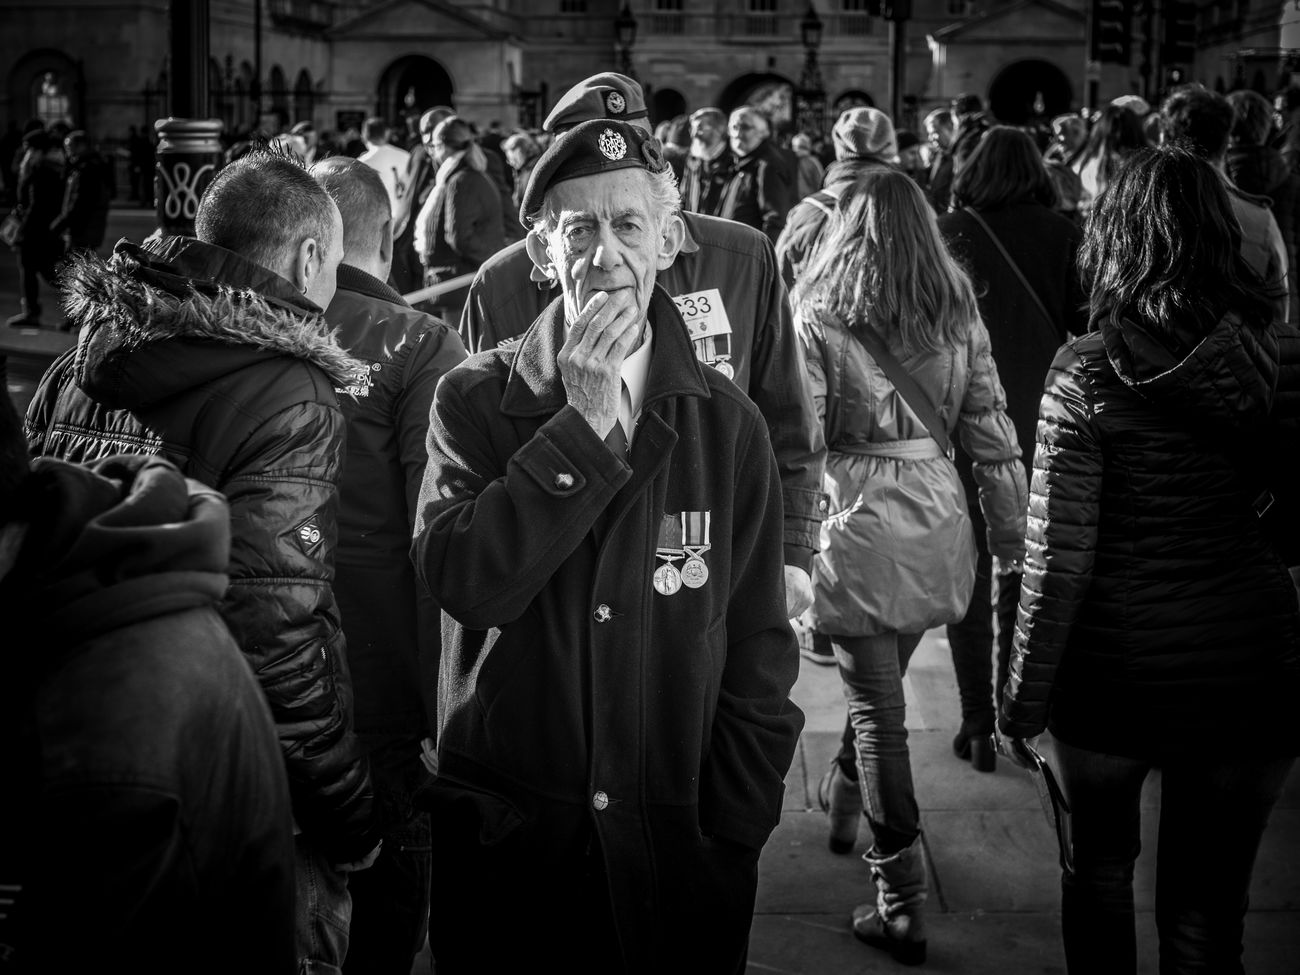 Lets remember and honour those who have sacrificed themselves to secure and protect our freedom. Ceremony 50mm Olympus Pen-f Rawstreets Maxgor Maxgor.com Street Streetphotography Peope Street Photography London Prime Lens Monochrome Photography Remembrance Day Remembrance